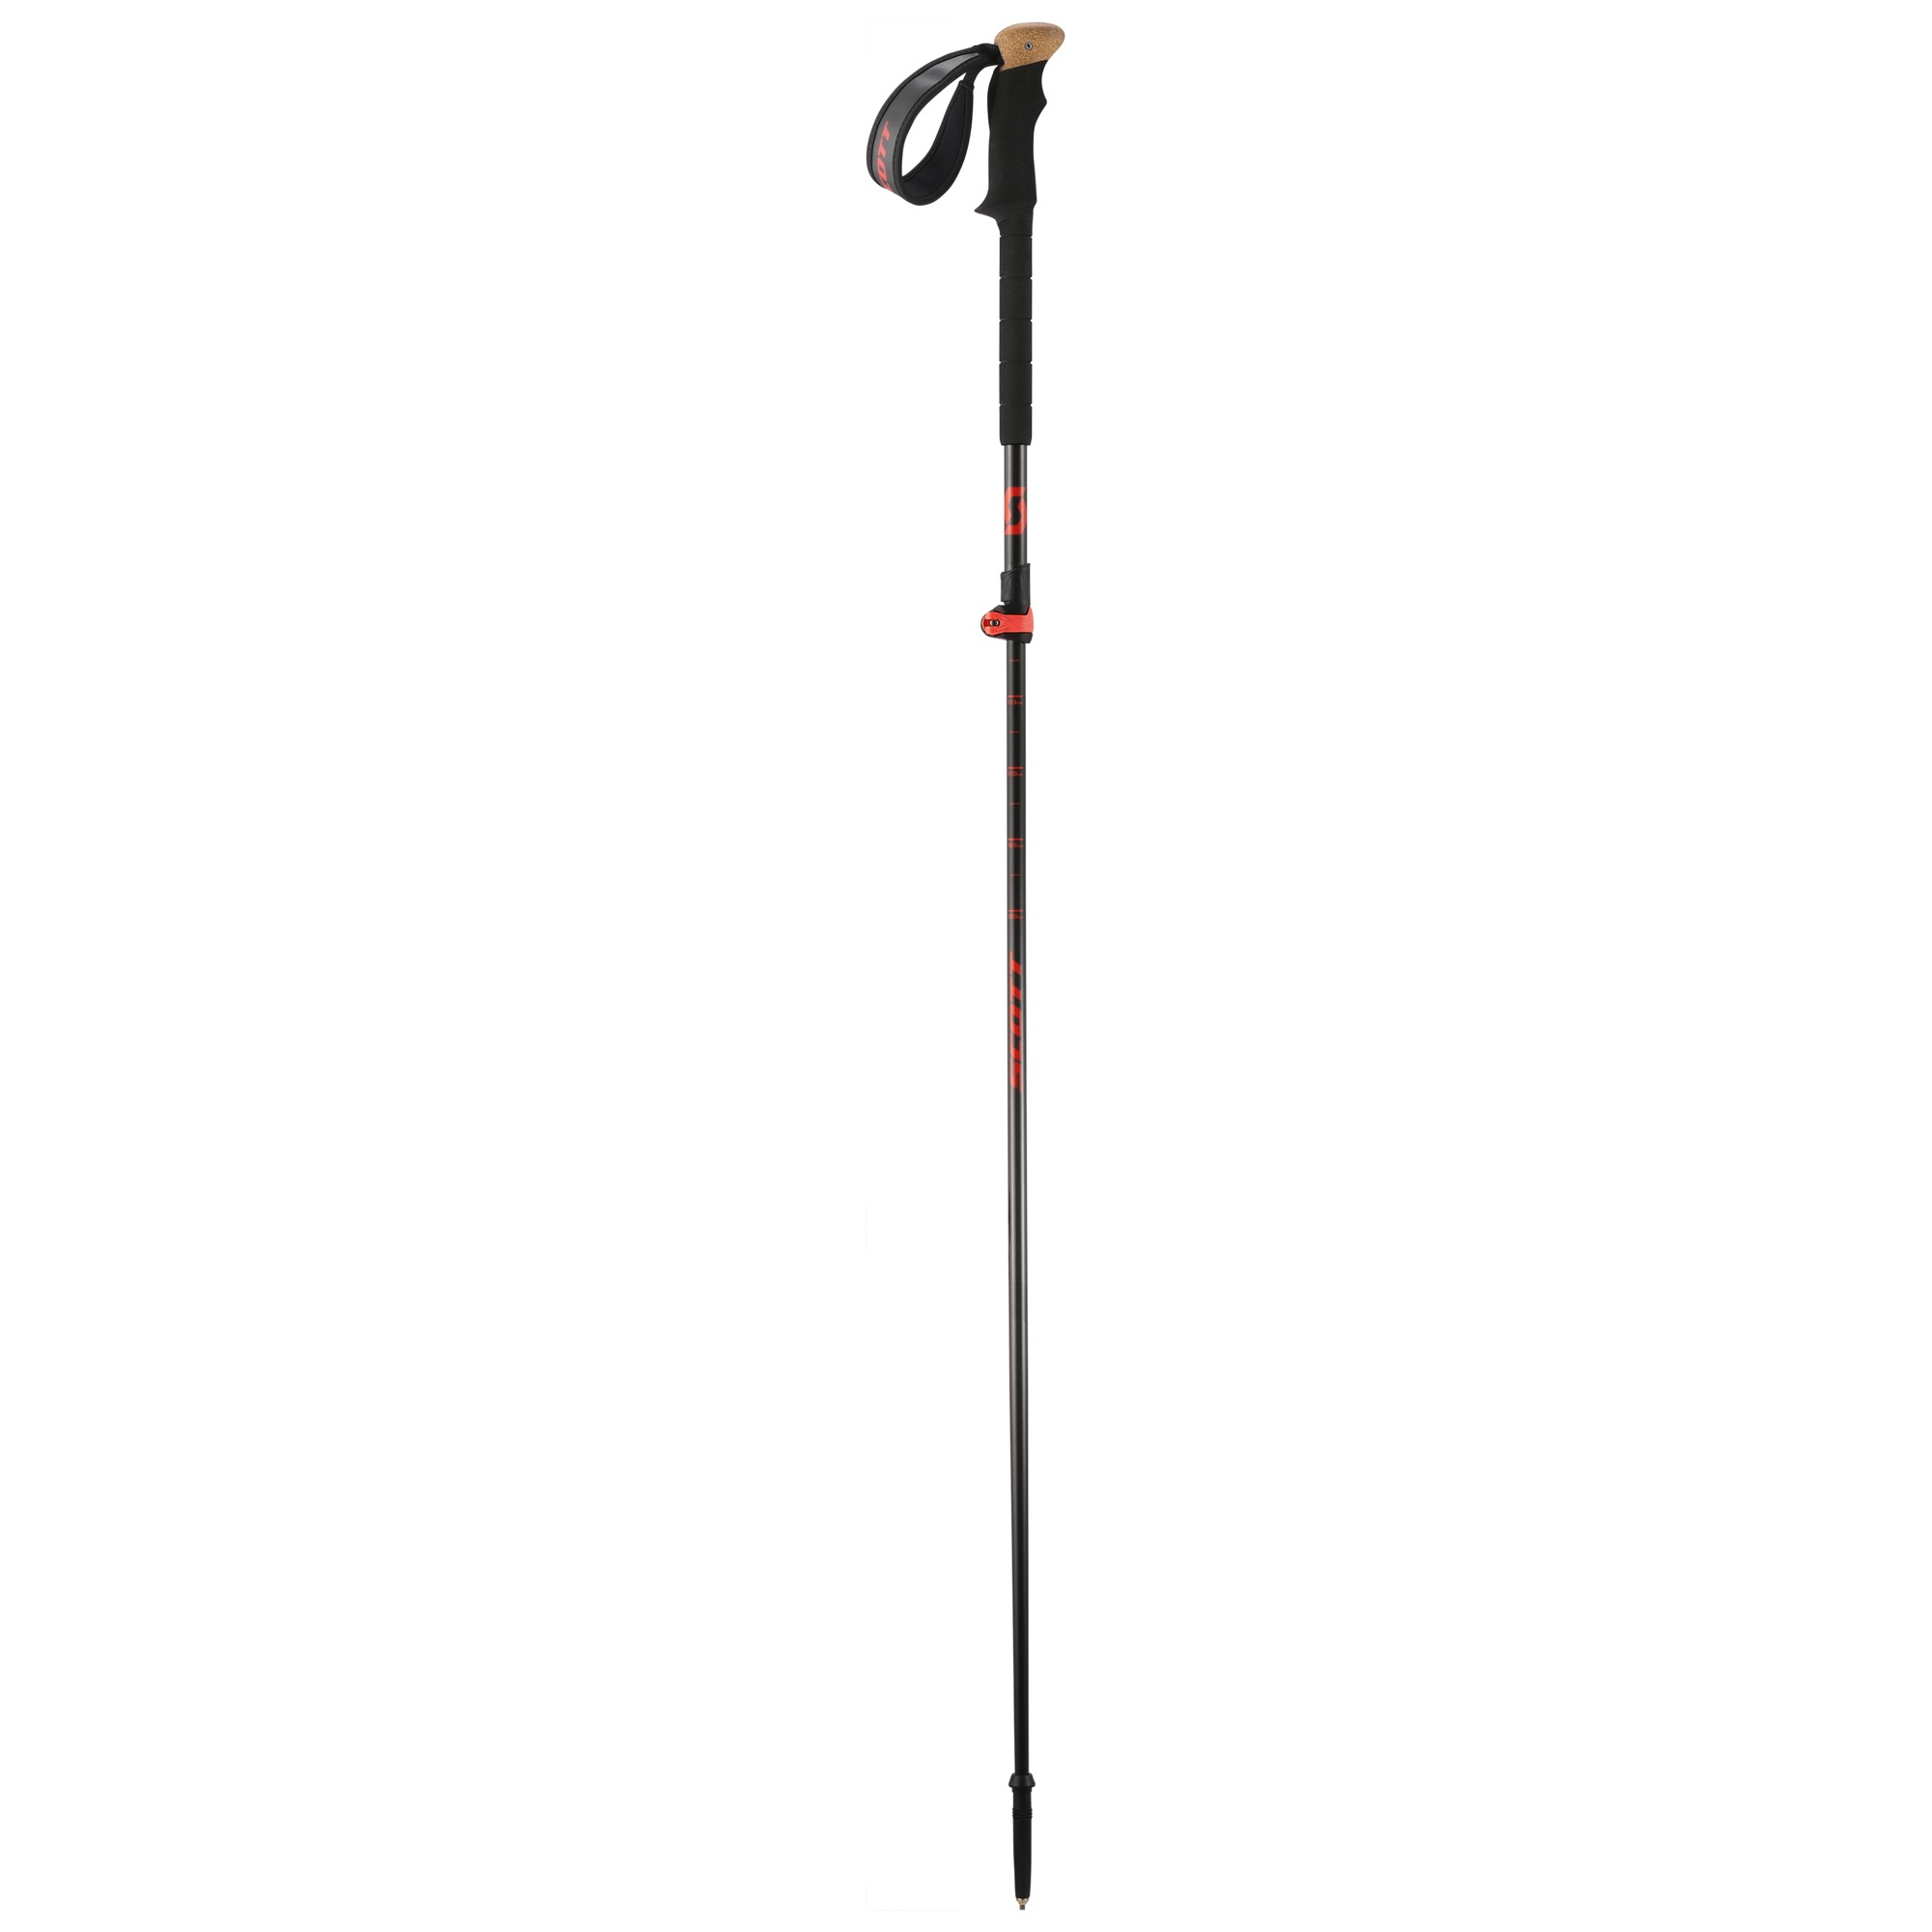 SCOTT Cascade C 2-part Ski Pole